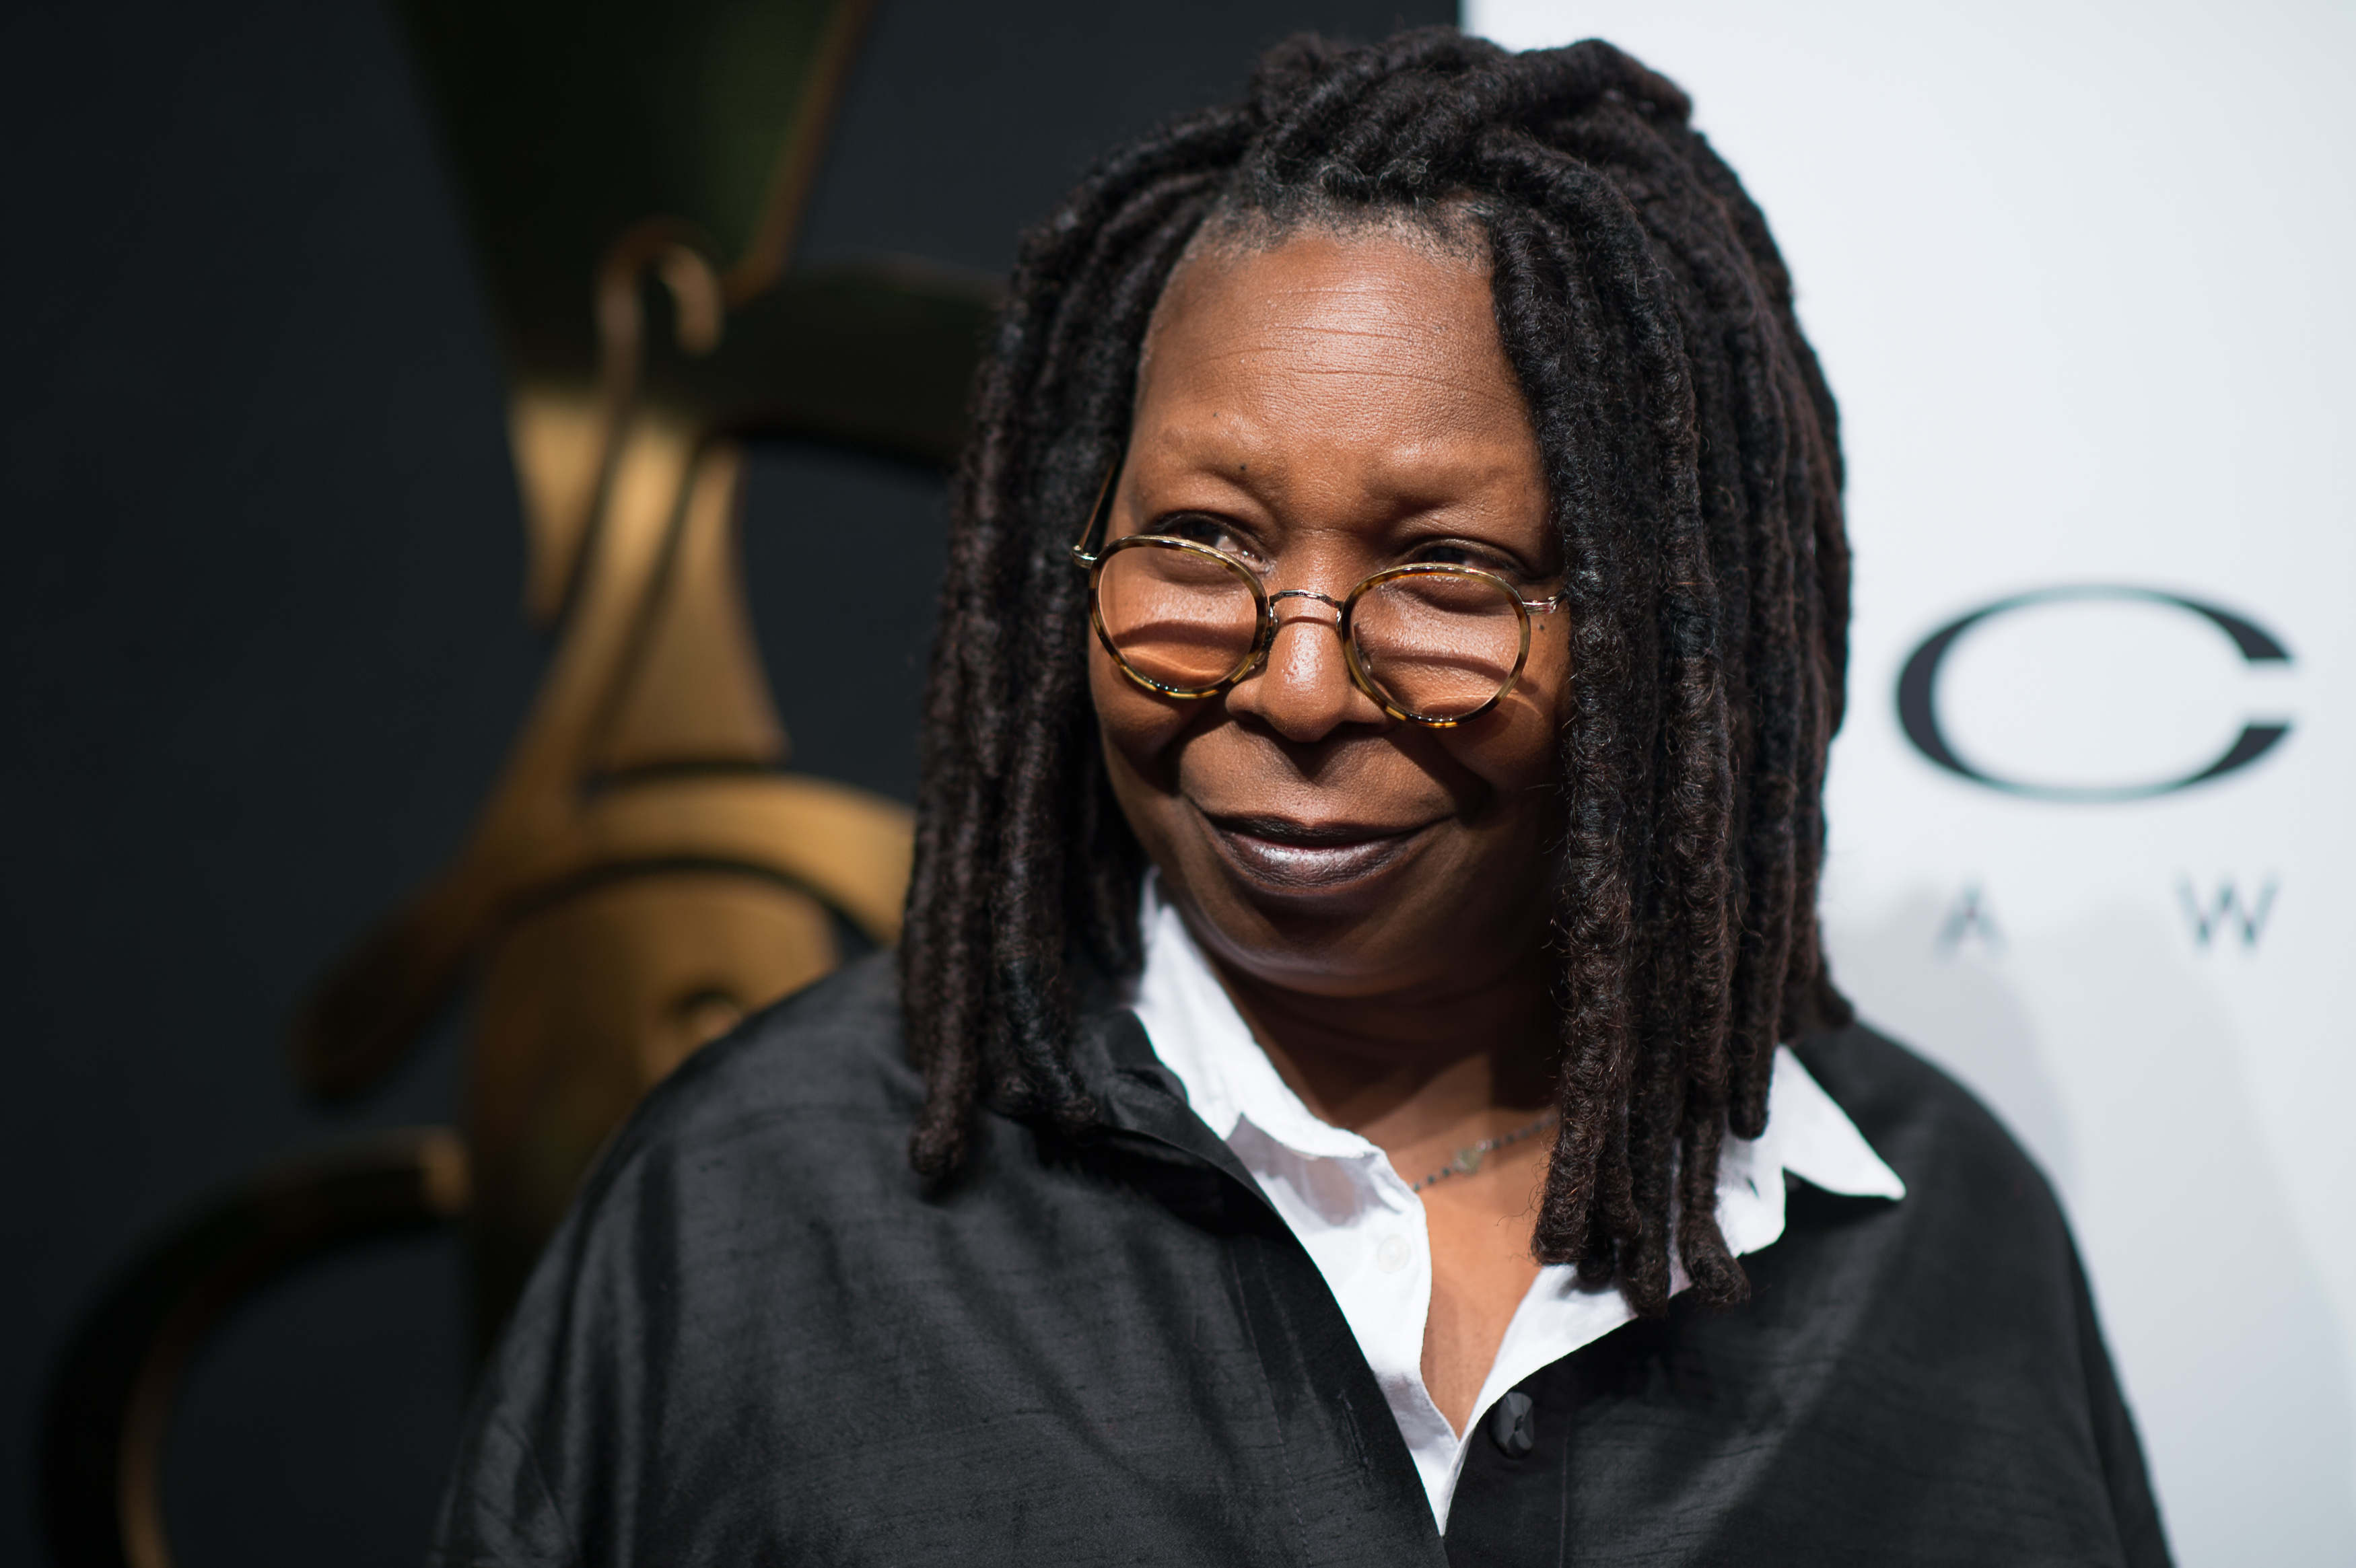 Ever noticed that Whoopi Goldberg doesn't have eyebrows?